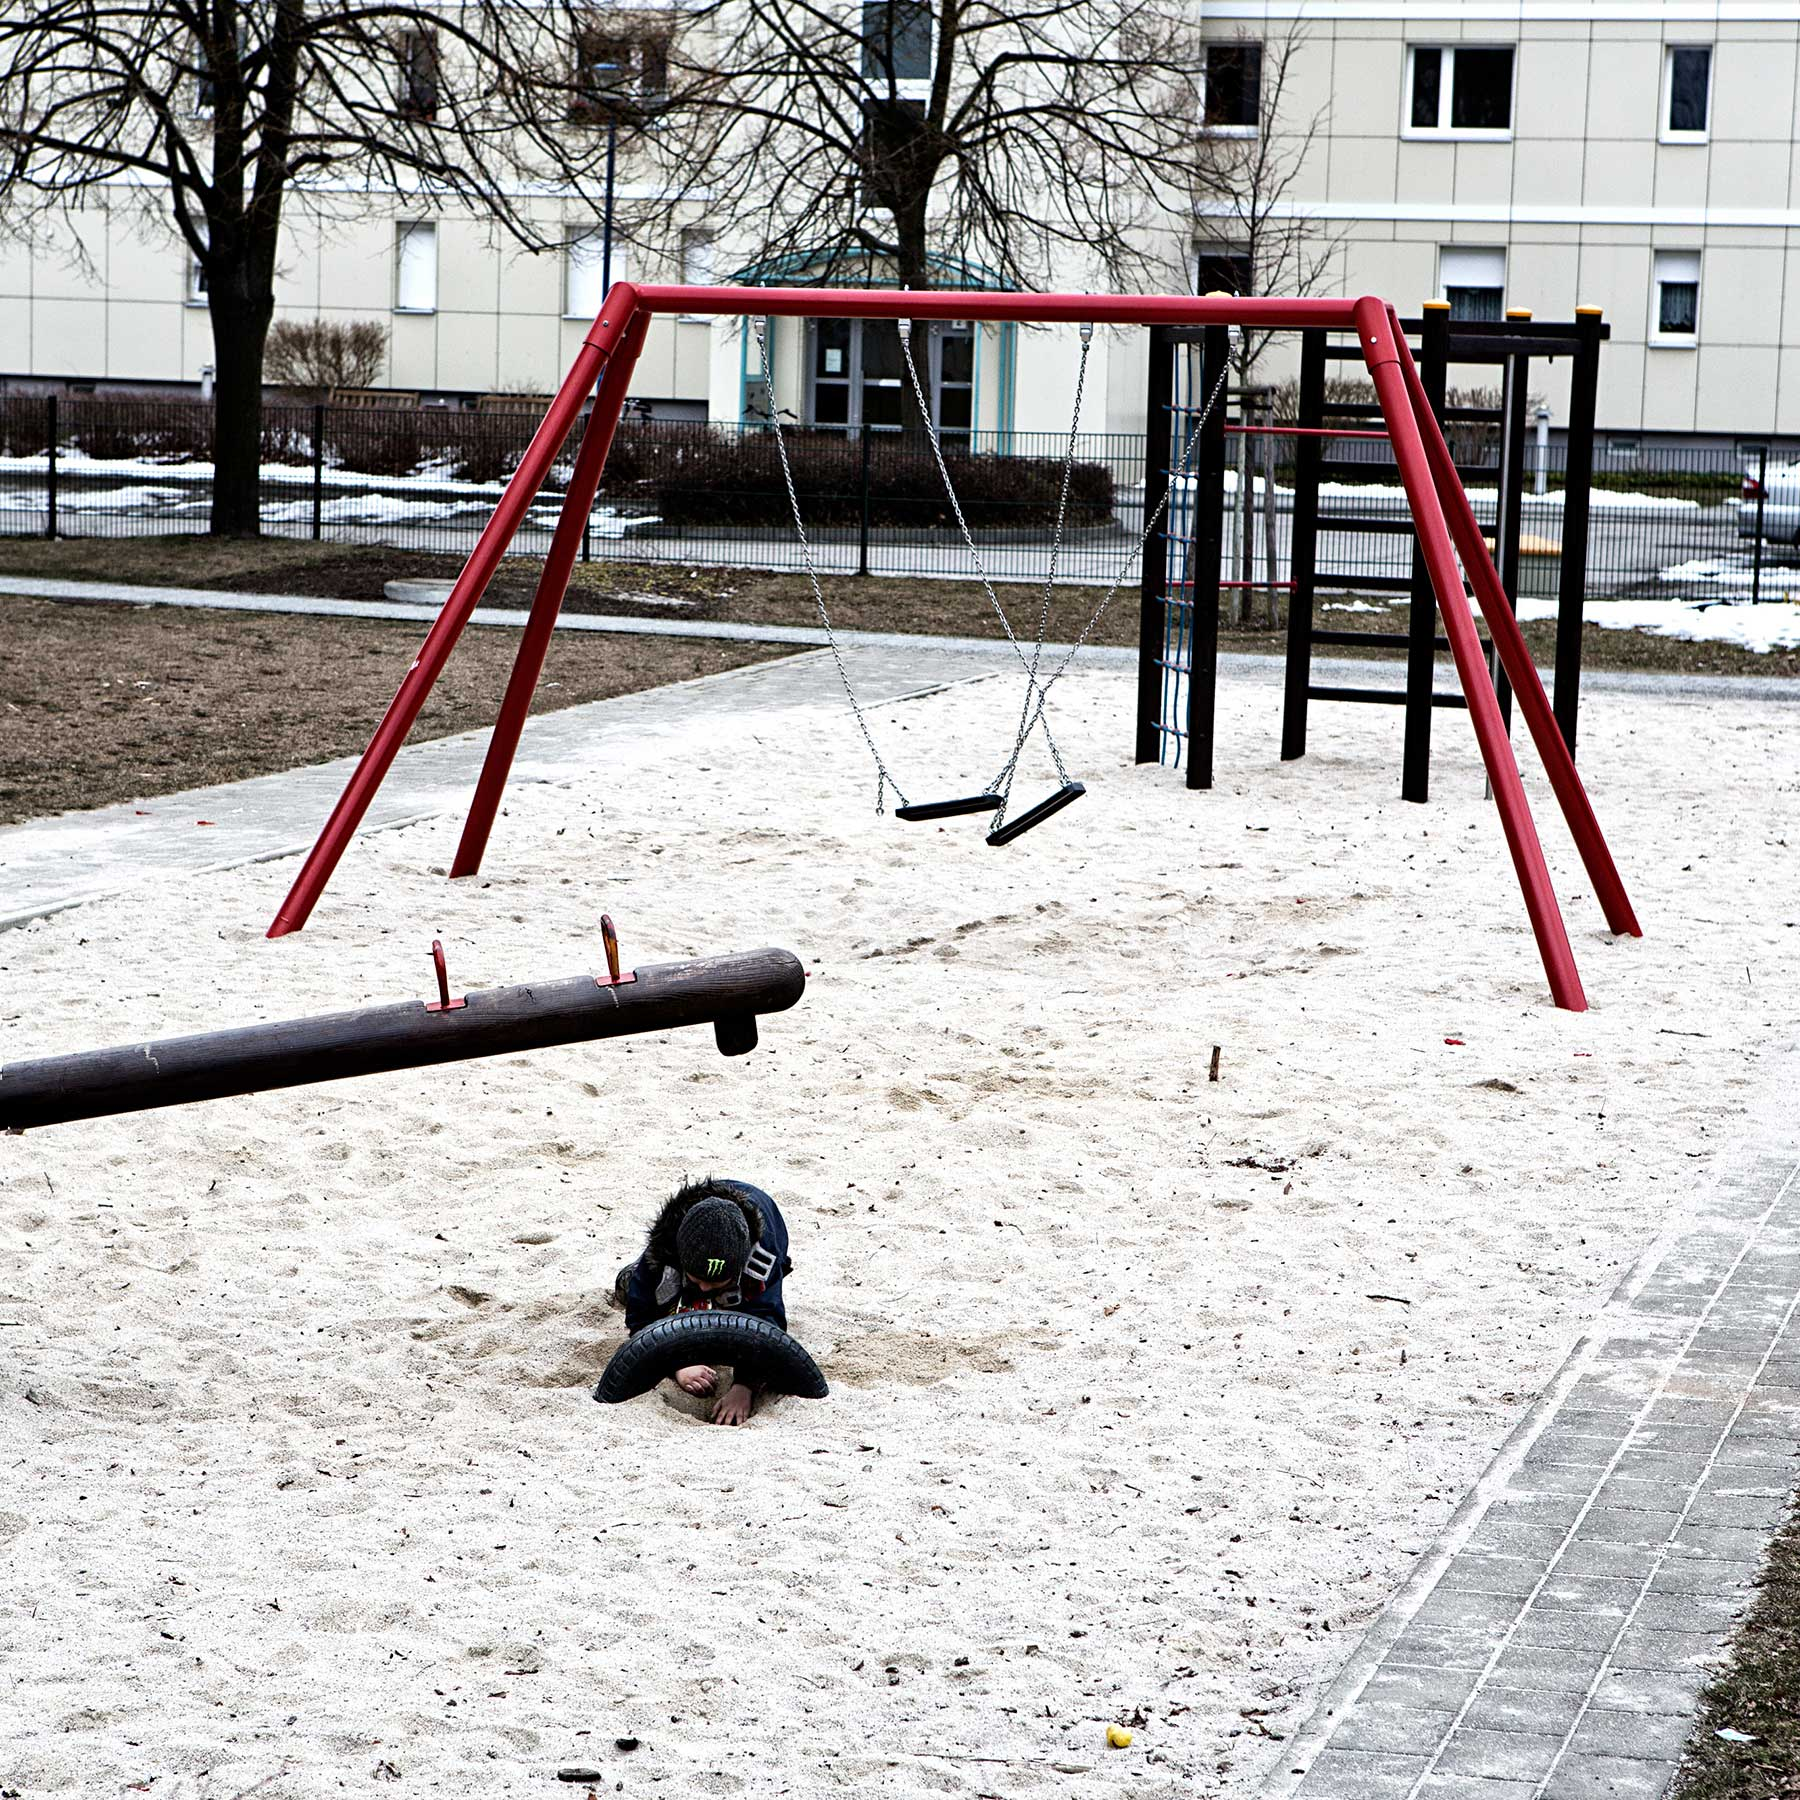 A young boy plays in the sand at a local playground.Hoyerswerda has plenty of playgrounds but most have just a few or no kids playing in them.